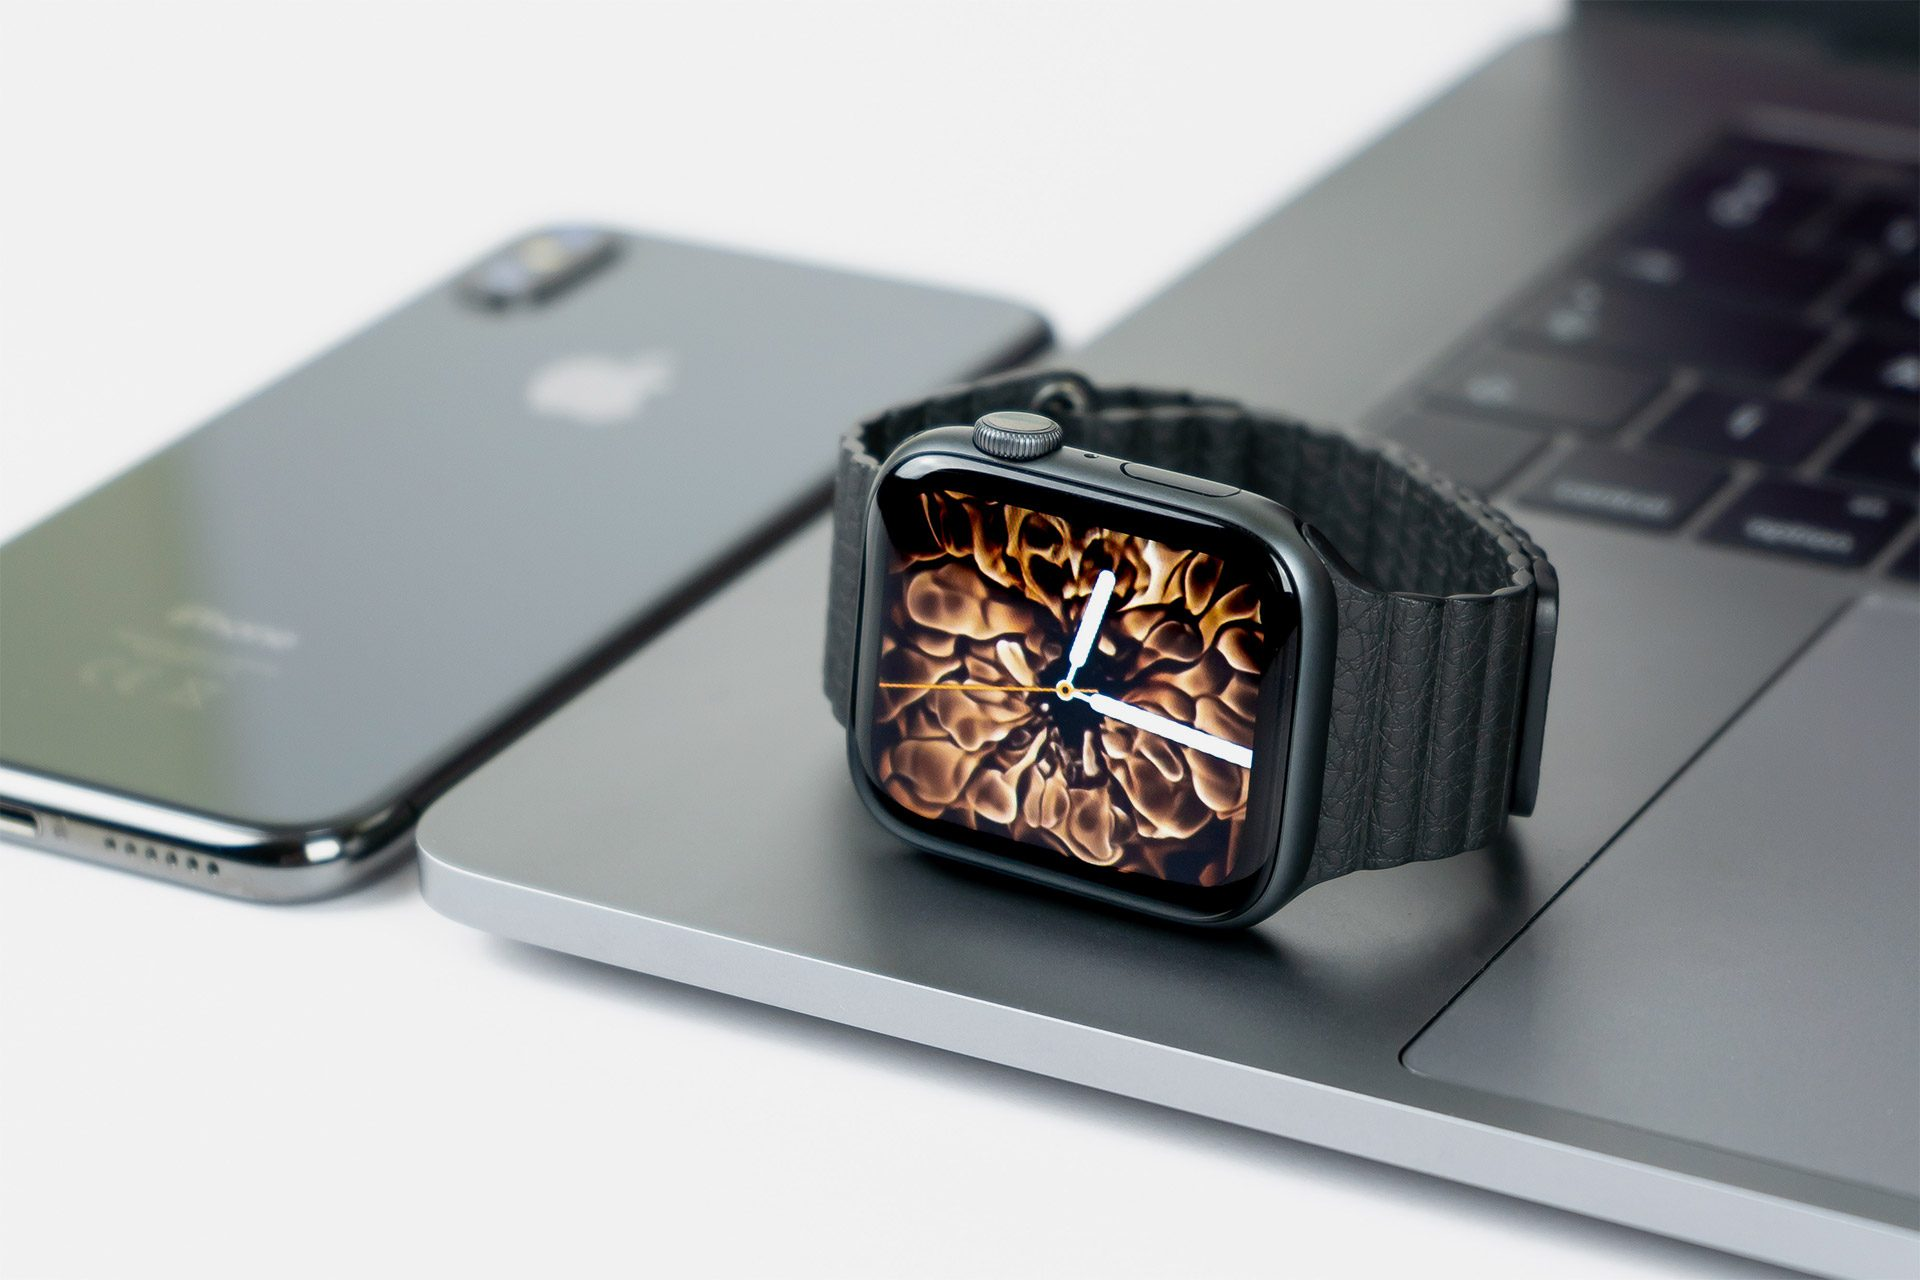 Hermes Apple Watch Series 4 review: Apple's luxury wearable impresses